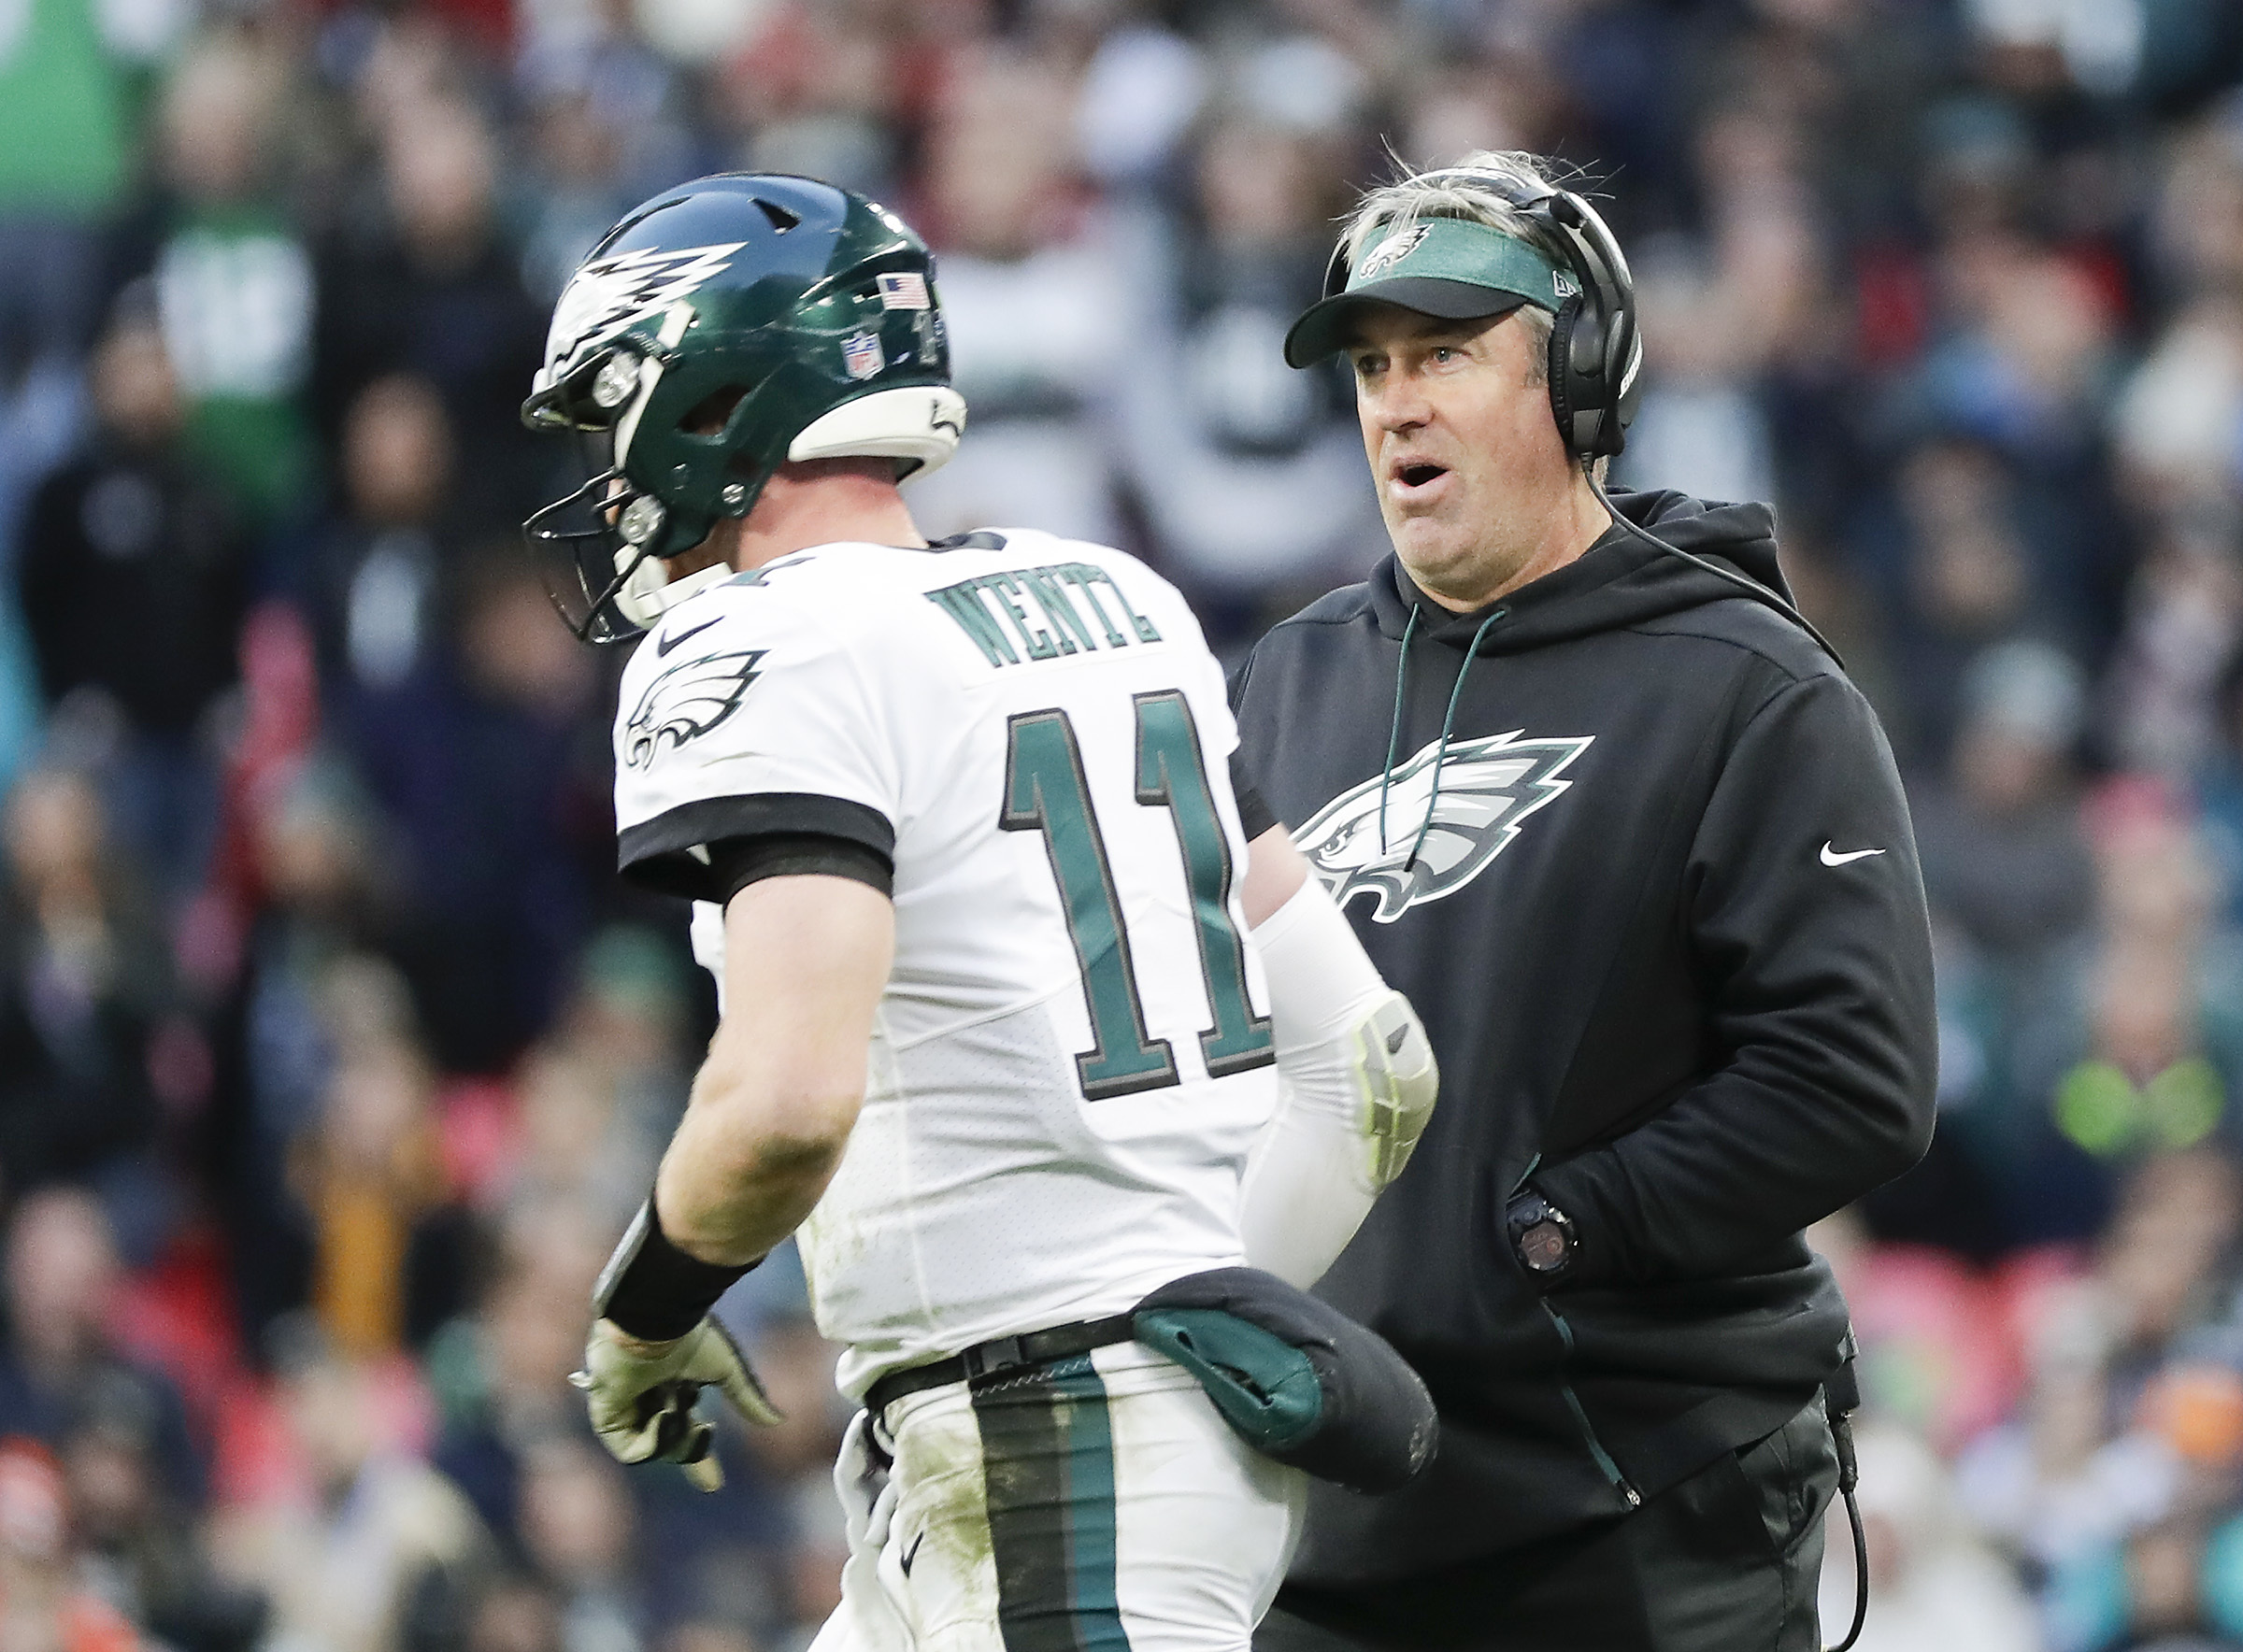 Eagles coach Doug Pederson looks at quarterback Carson Wentz late in the game against Jacksonville.